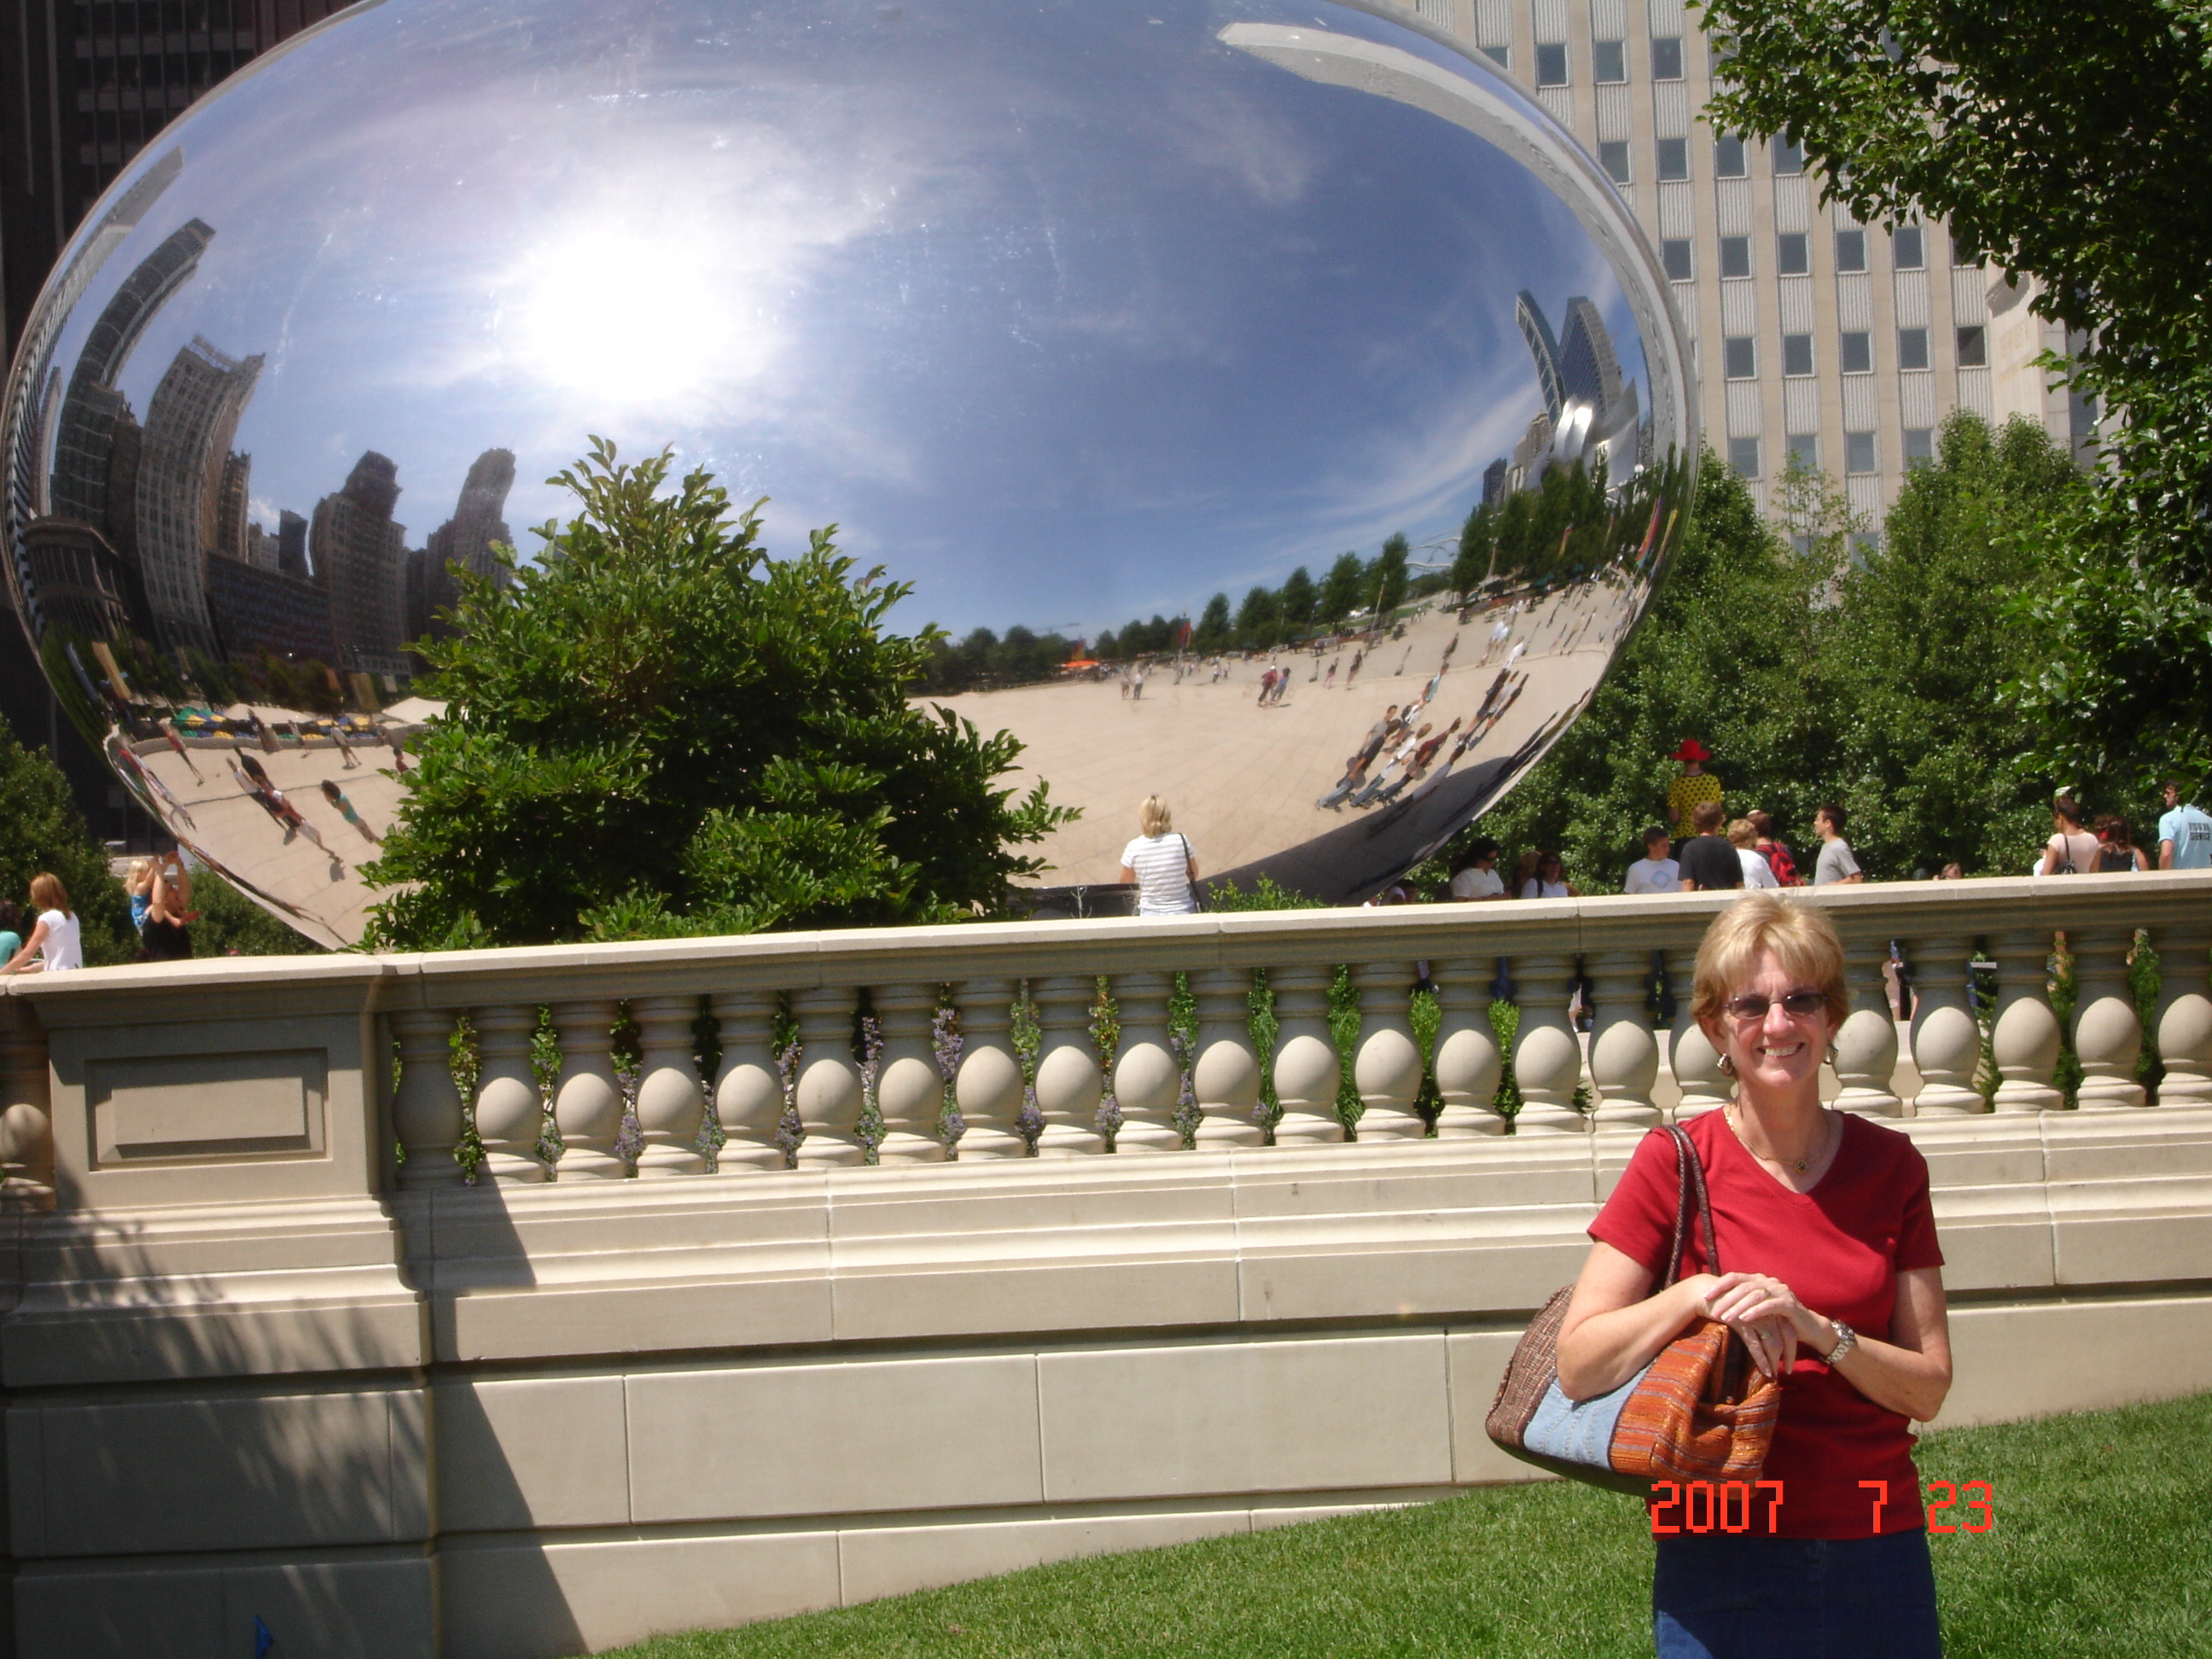 The Bean in Millennium Park